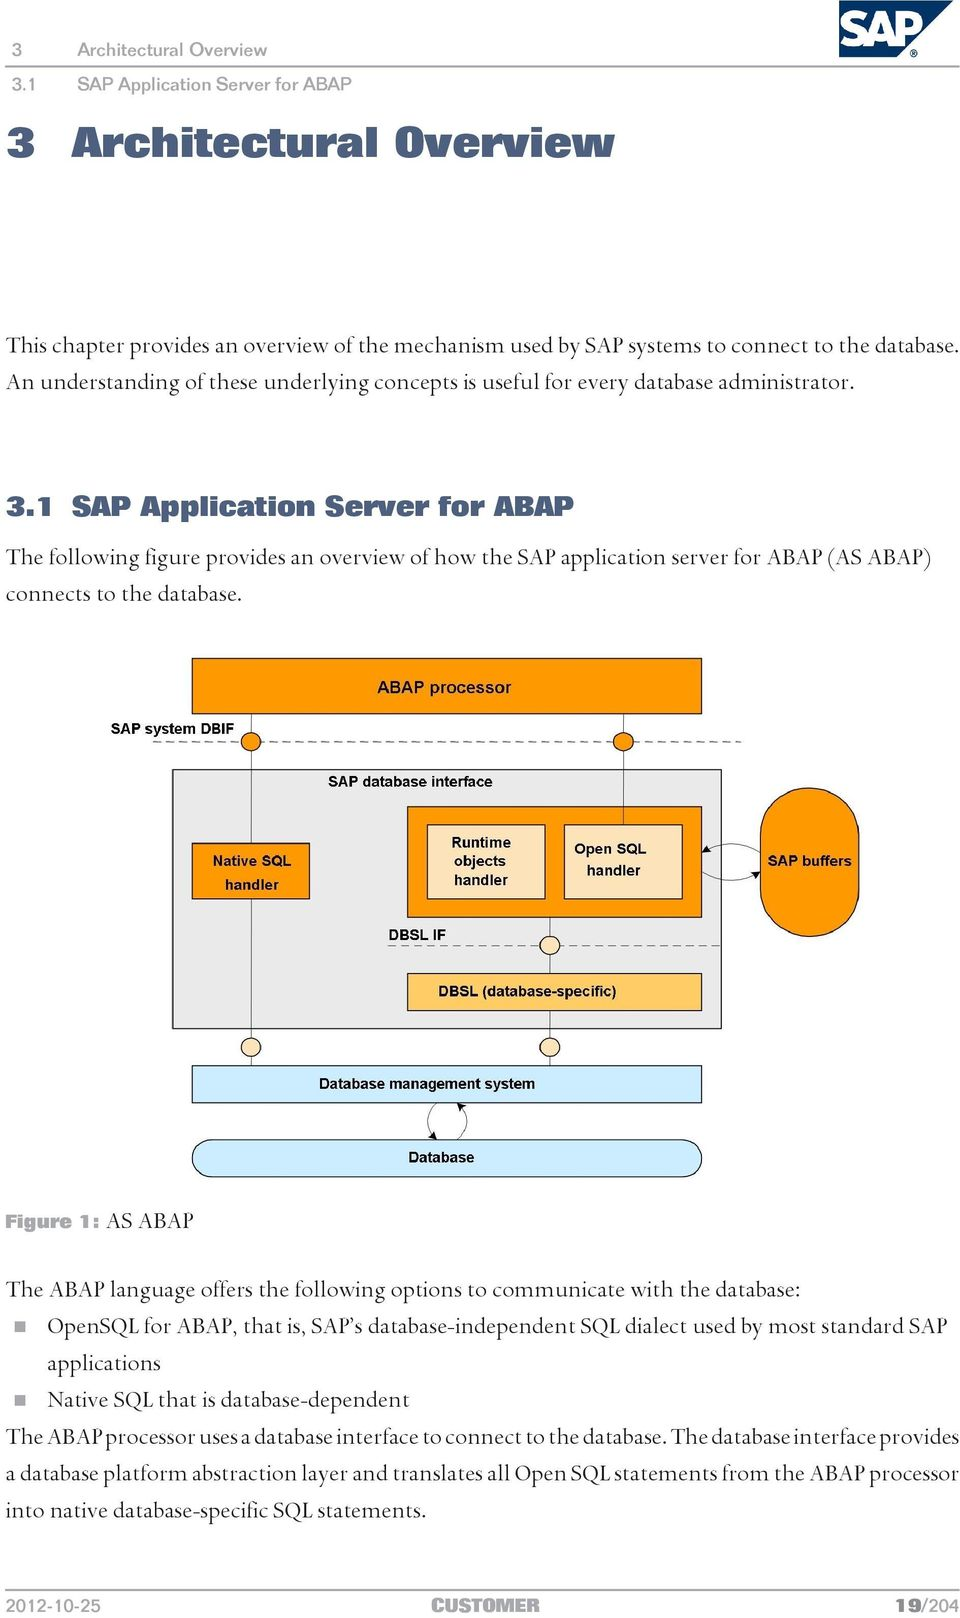 1 SAP Application Server for ABAP The following figure provides an overview of how the SAP application server for ABAP (AS ABAP) connects to the database.